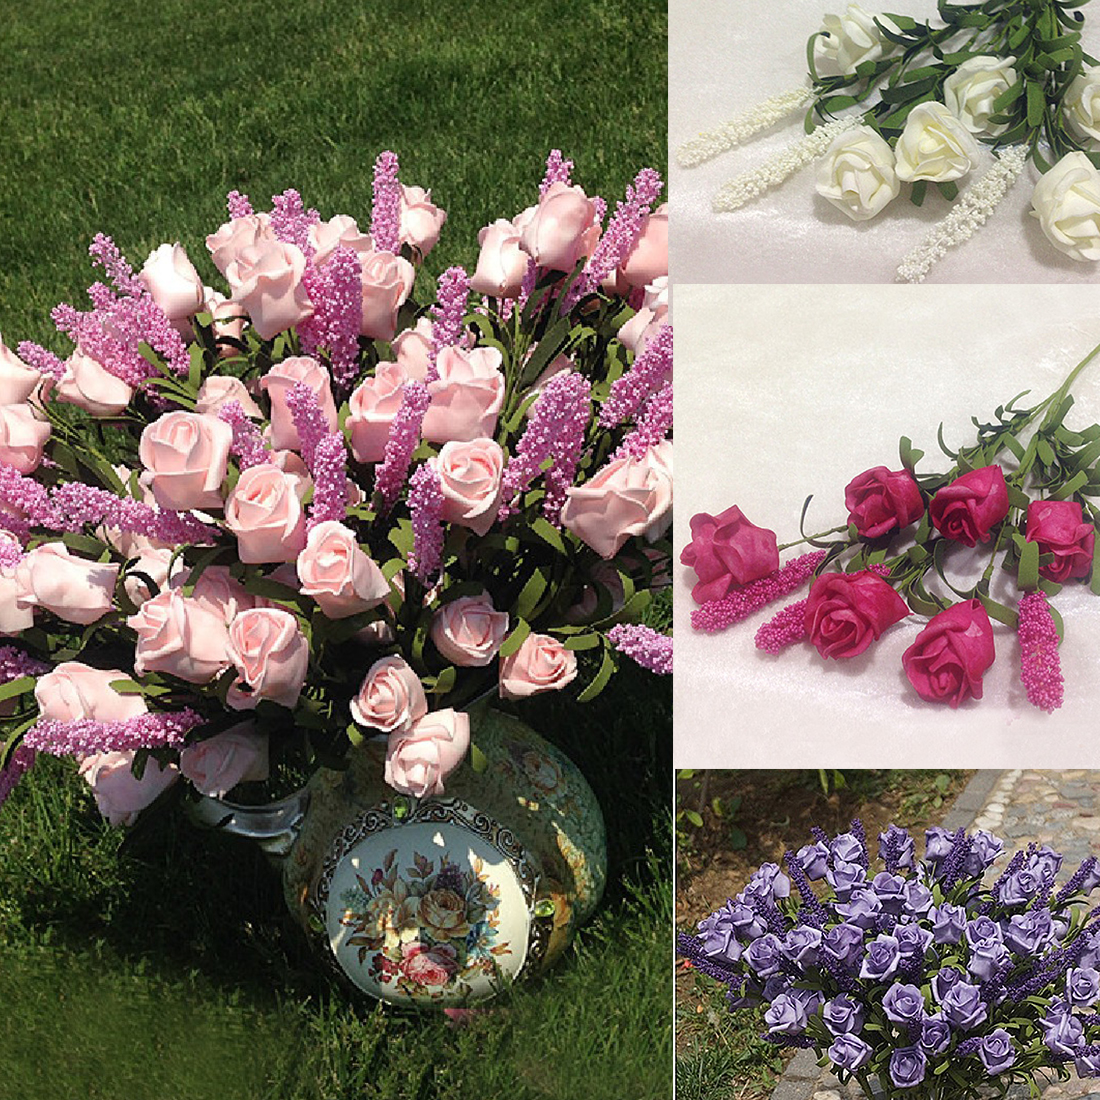 Retail wedding bridal 9 heads lavender rose artificial peony silk retail wedding bridal 9 heads lavender rose artificial peony silk flowers hydrangea party home decorition flower arrangement in artificial dried flowers izmirmasajfo